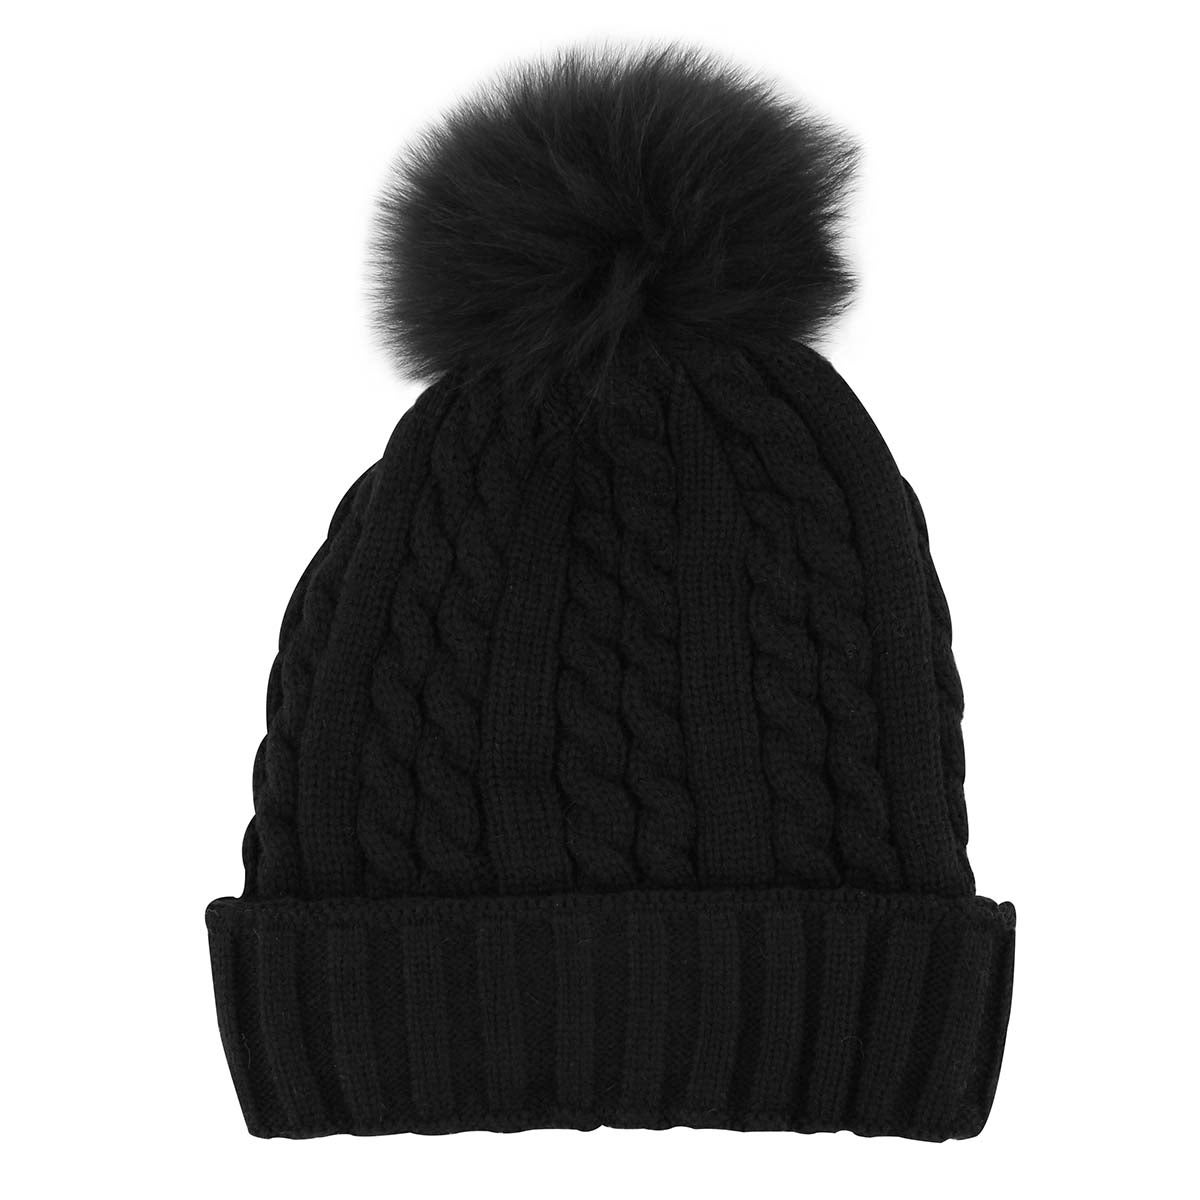 Women's black/black with fur cable stitch hats